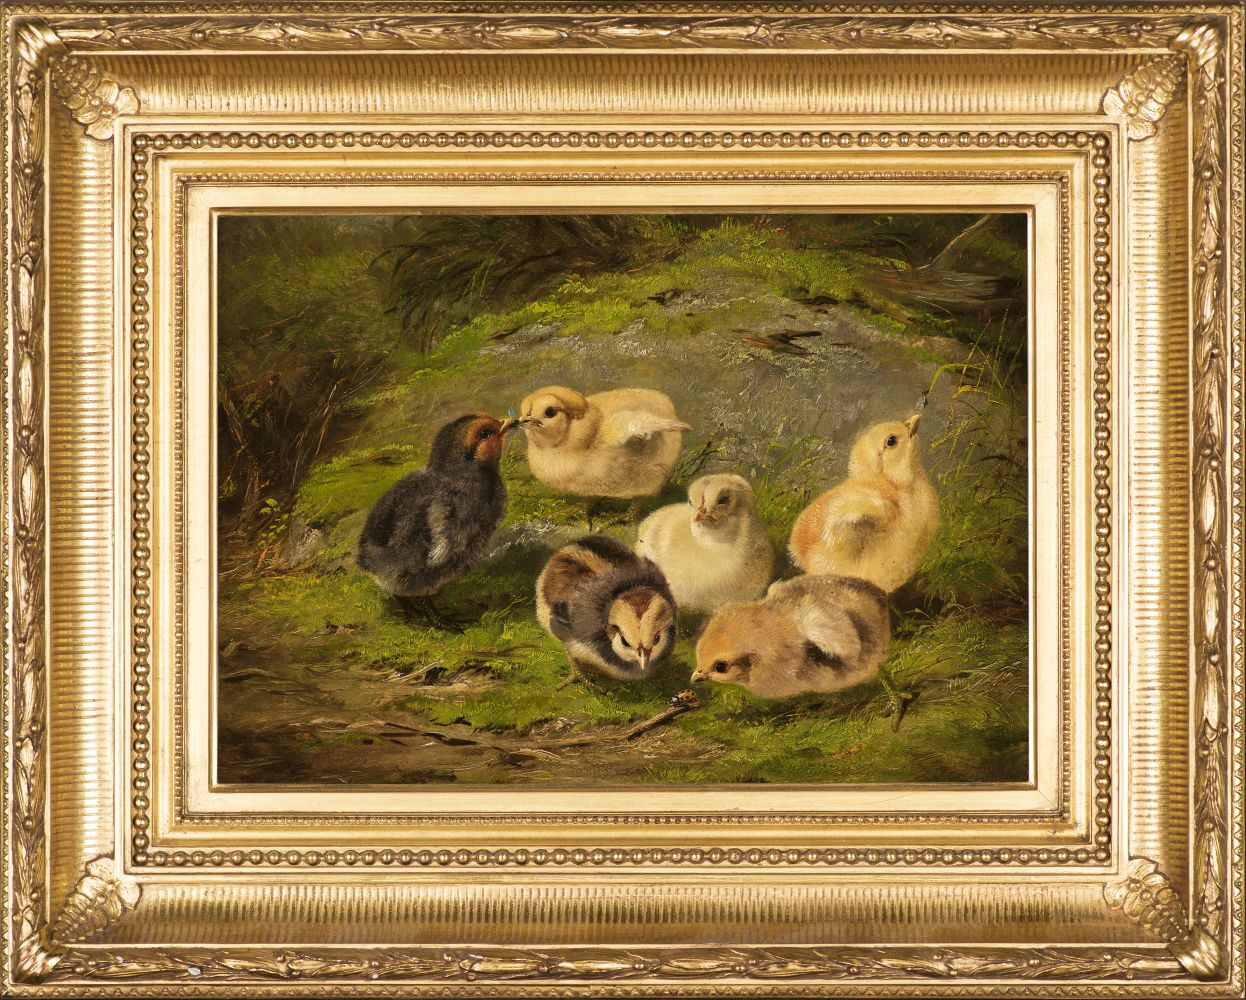 Arthur Fitzwilliam Tait (1819–1905), Chickens, 1865, oil on artist board, 10 x 14 in., signed and dated lower right: A. F. Tait / 1865 Inscribed on verso: 402 / AF Tait / 1865 (framed)